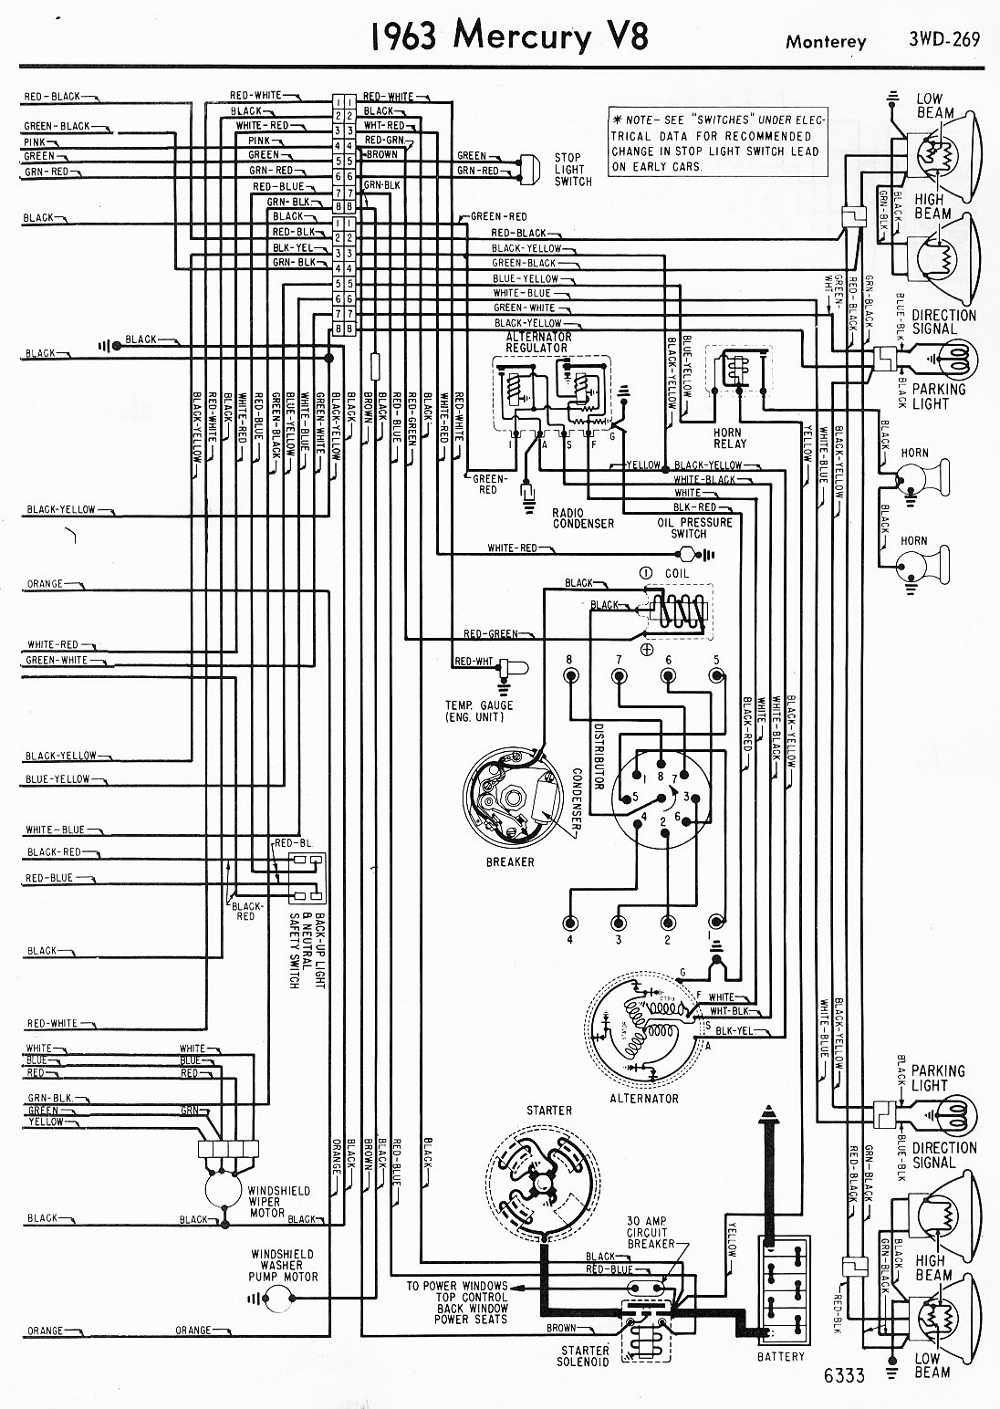 Mercury V8 Monterey 1963 Wiring Diagram Right Side Part